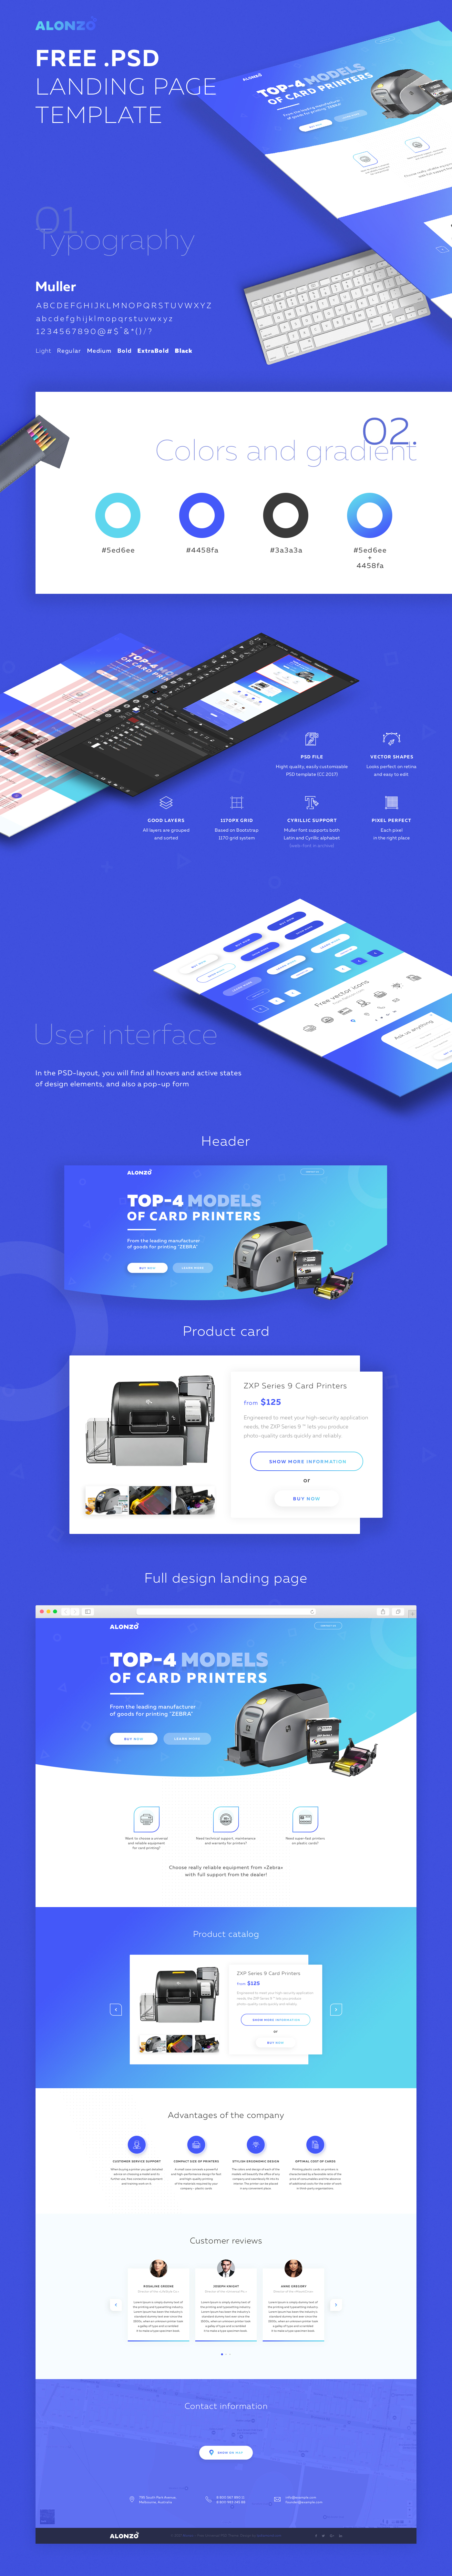 Alonzo – Landing Page PSD Template Free Download